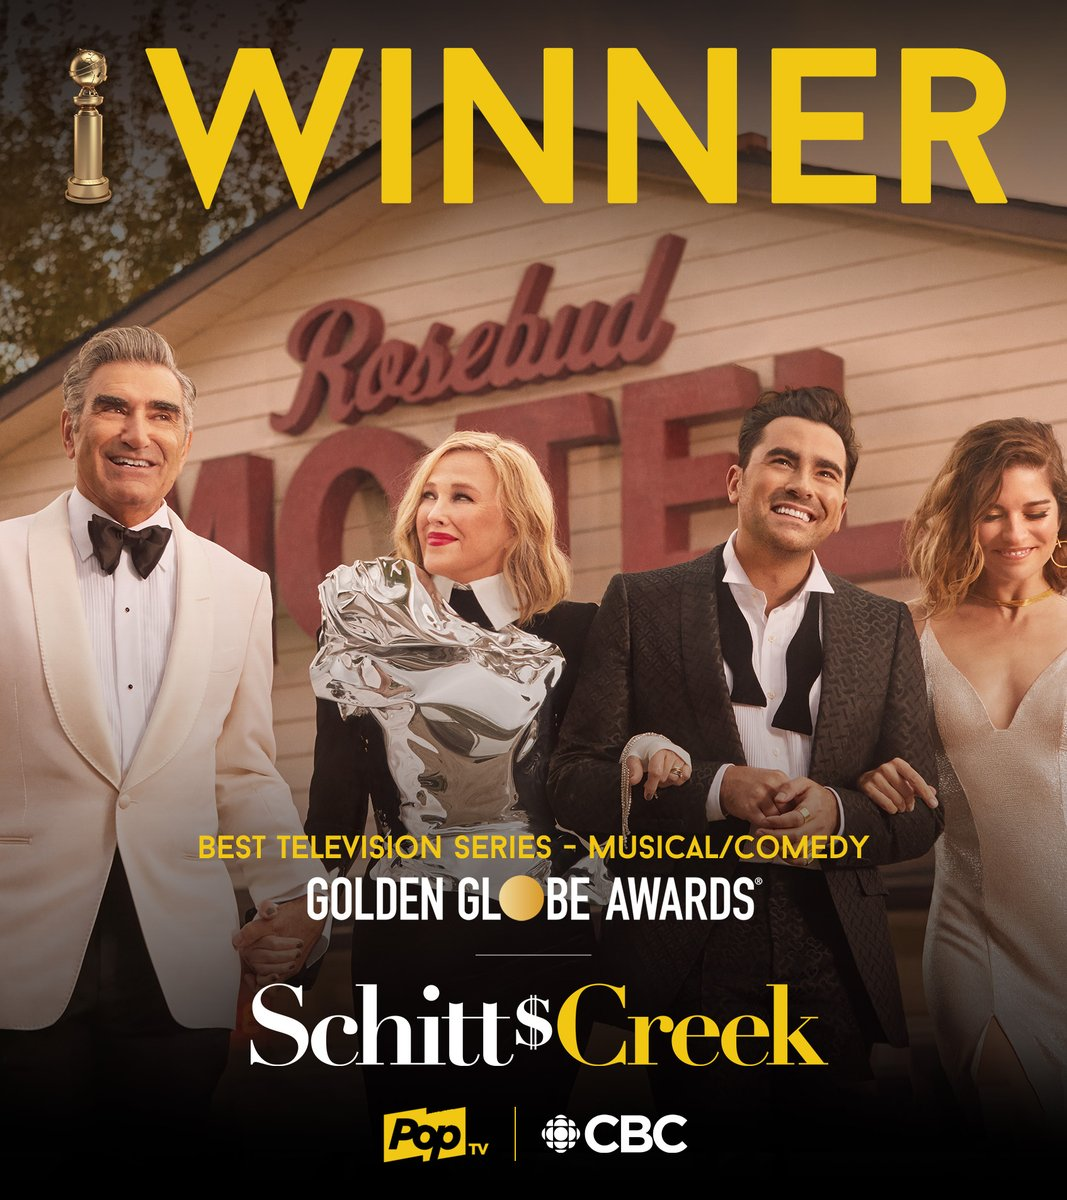 All the love and congratulations going out to Catherine O'Hara for her win tonight, and to the entire Schitt's Creek cast and crew for the team win! ✨💛✨ https://t.co/LF8Q1Vd8Hj